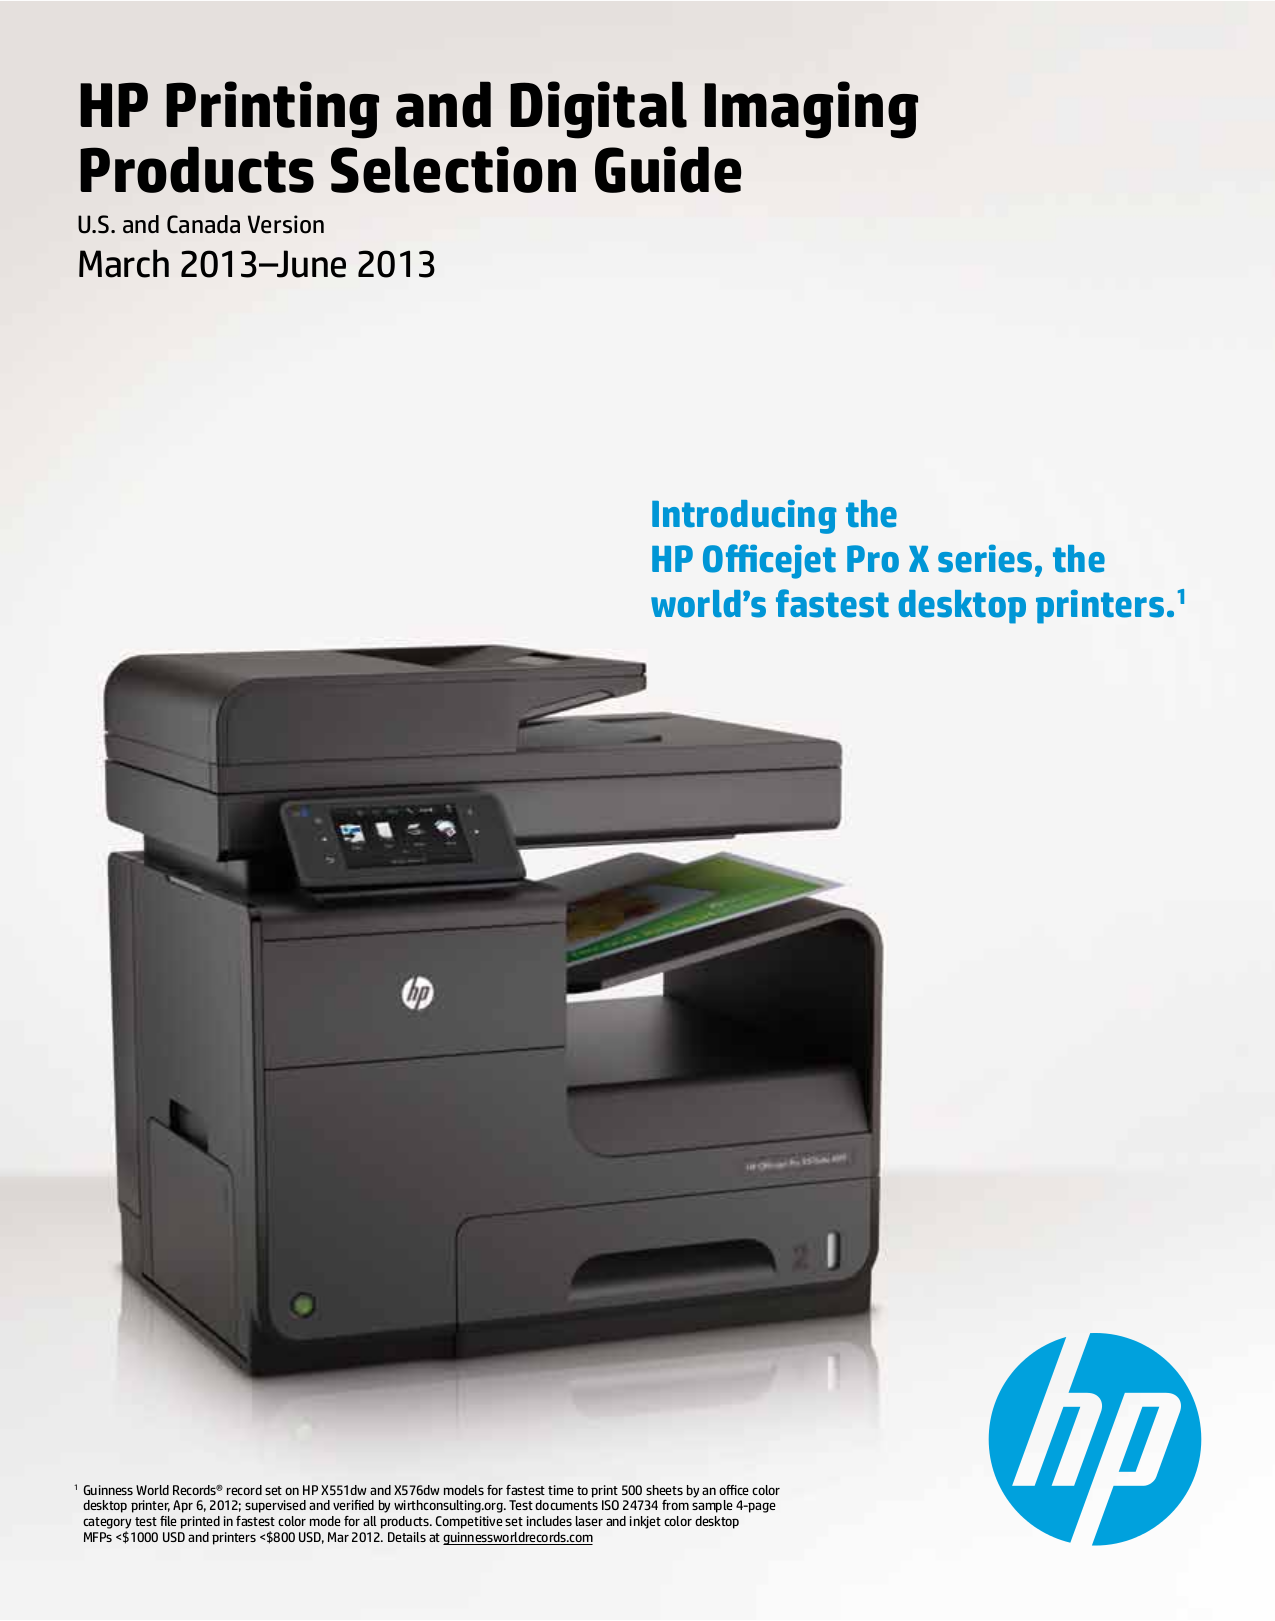 download free pdf for hp laserjet color laserjet 3200m multifunction rh umlib com HP LaserJet 1320 HP LaserJet Toner Cartridges